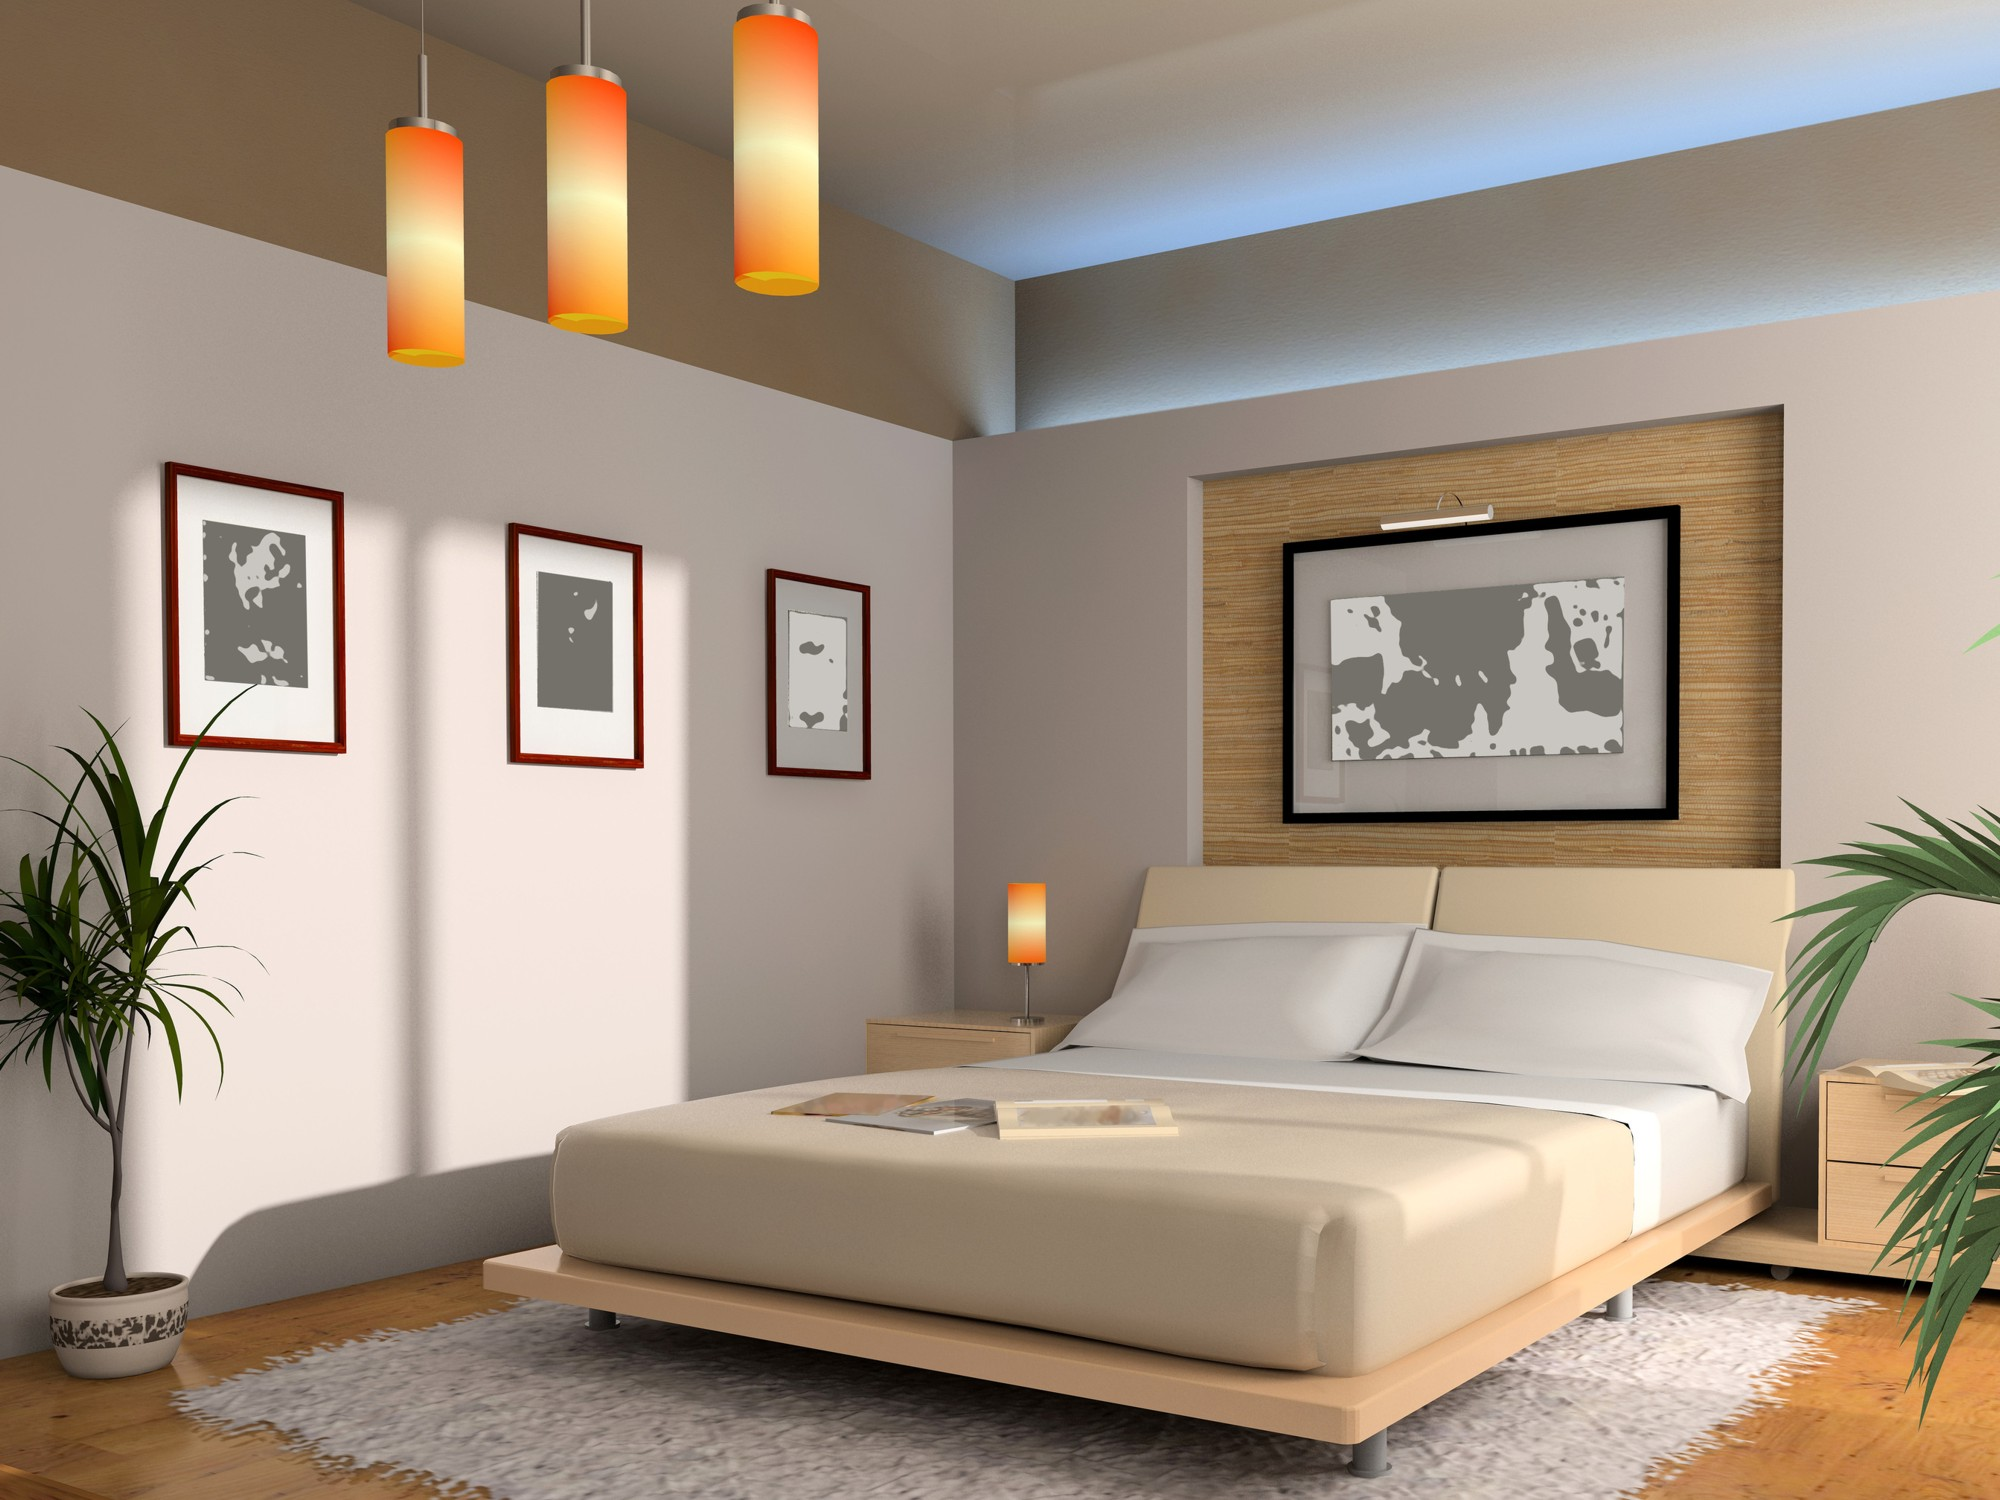 Feng Shui Schlafzimmer Farbe Erde Modern Interior Of A Bedroom With Illumination Dekorstore